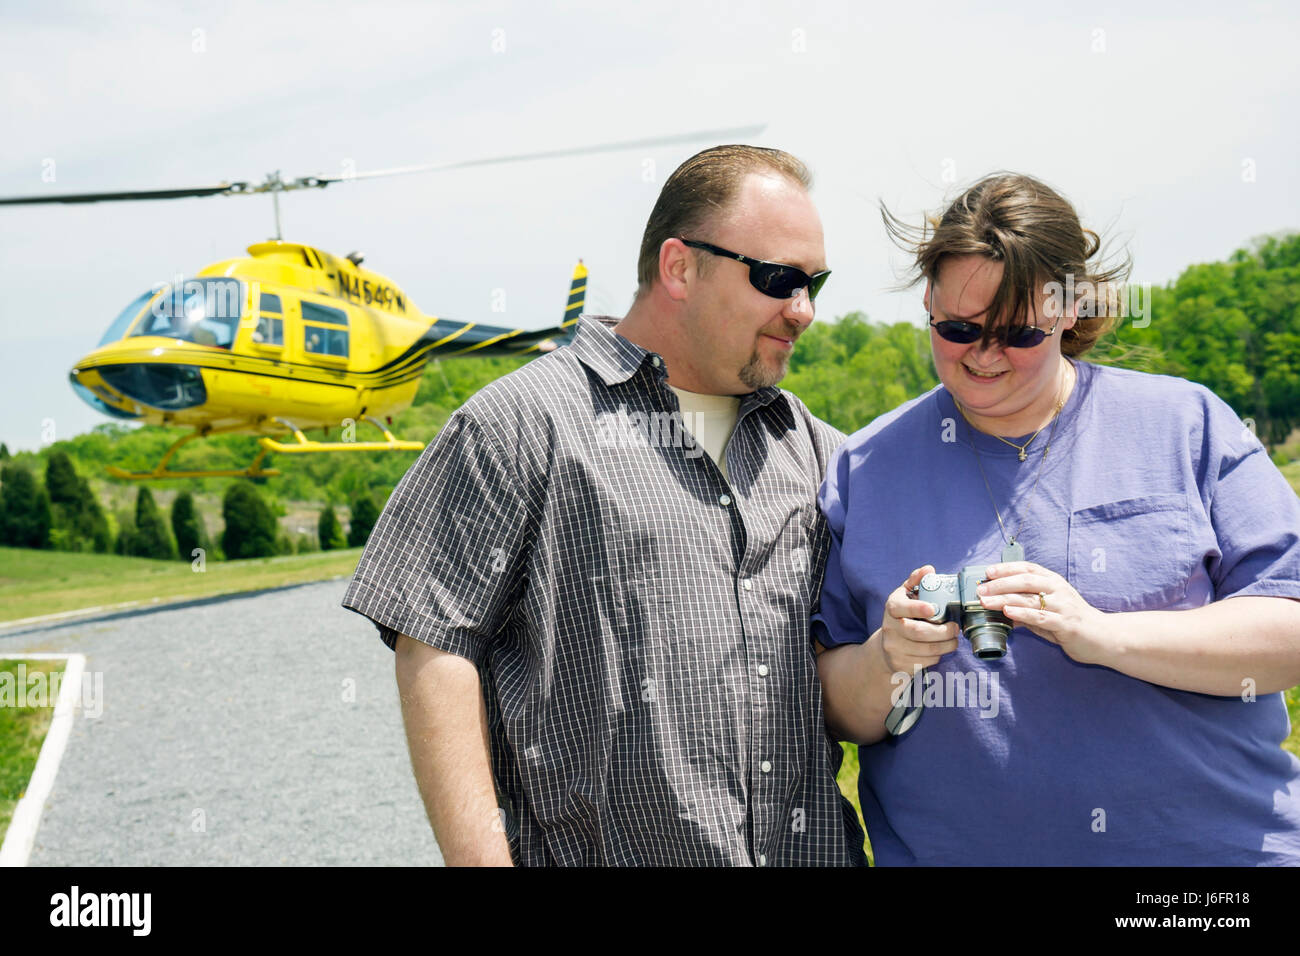 Tennessee Sevierville Scenic Helicopter Tours flight tour landing pad man woman couple camera - Stock Image